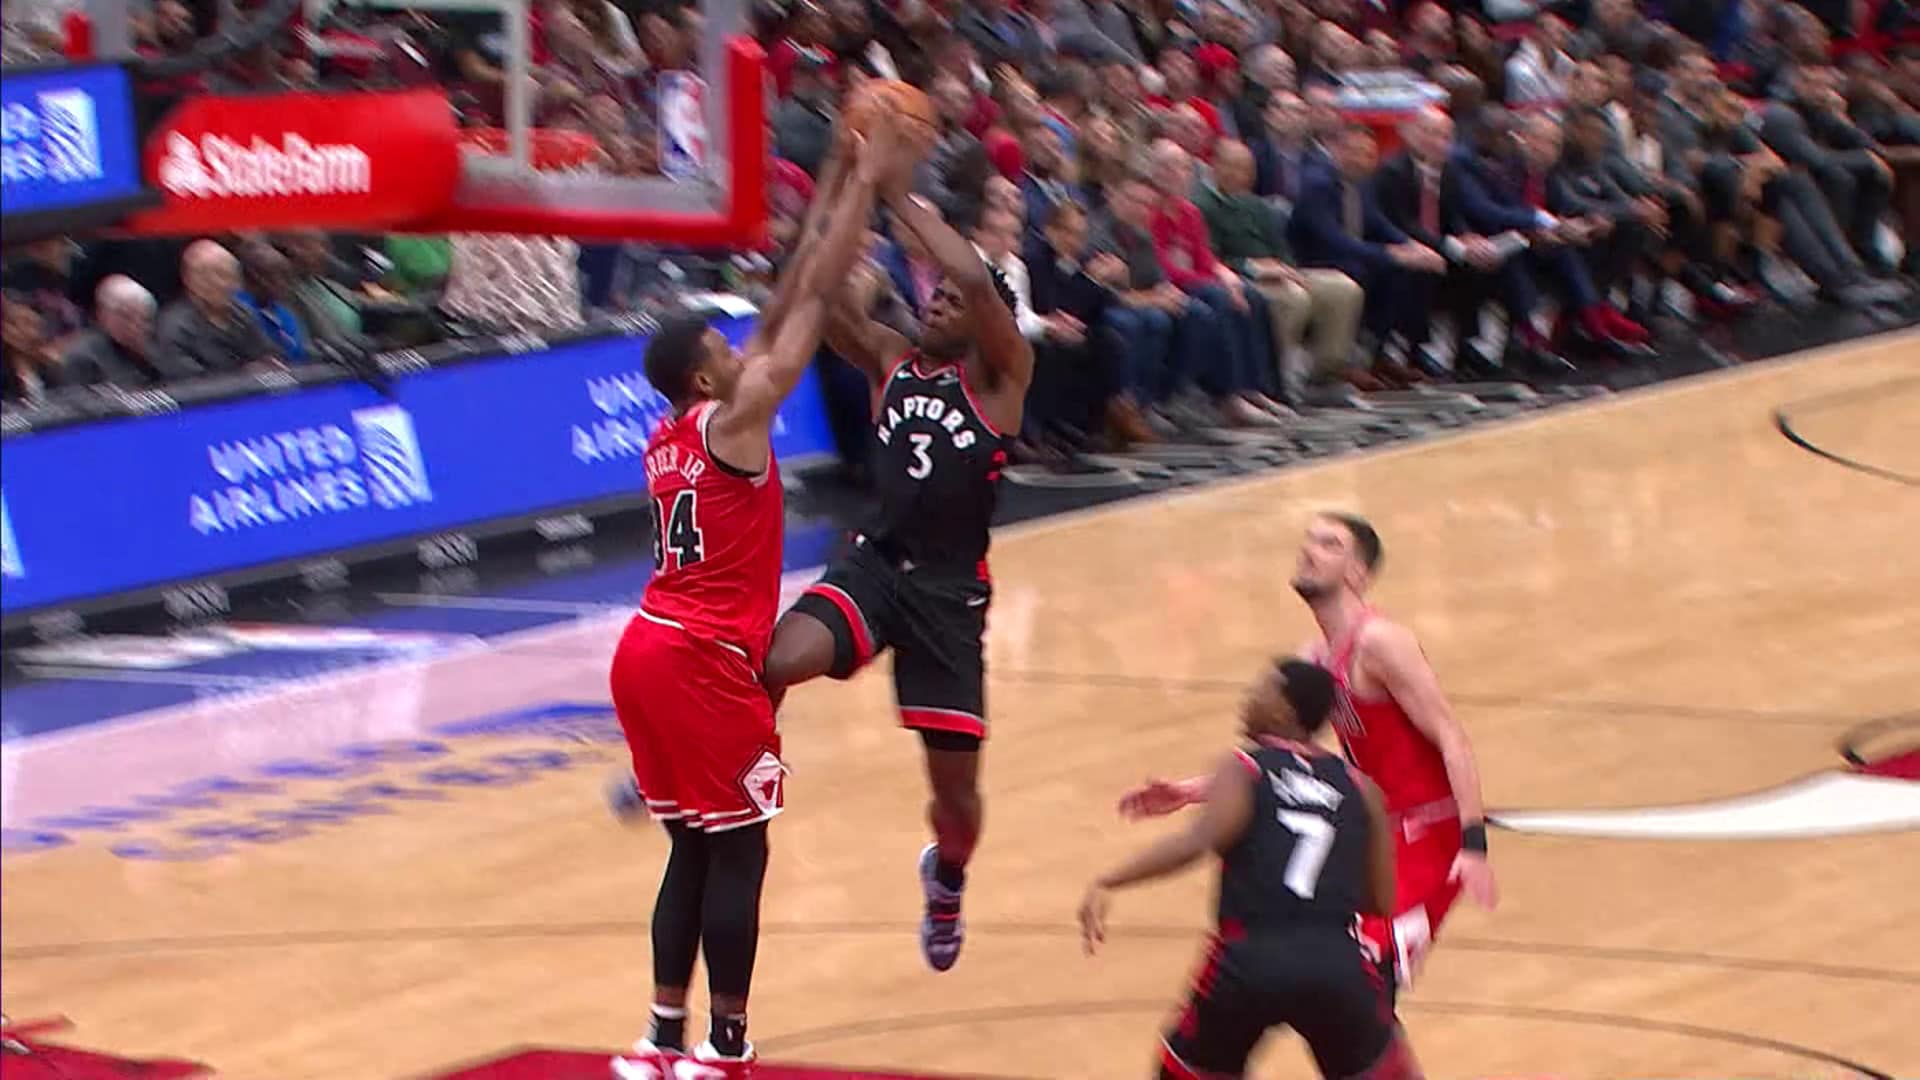 Raptors Highlights: Anunoby And-1 - December 9, 2019